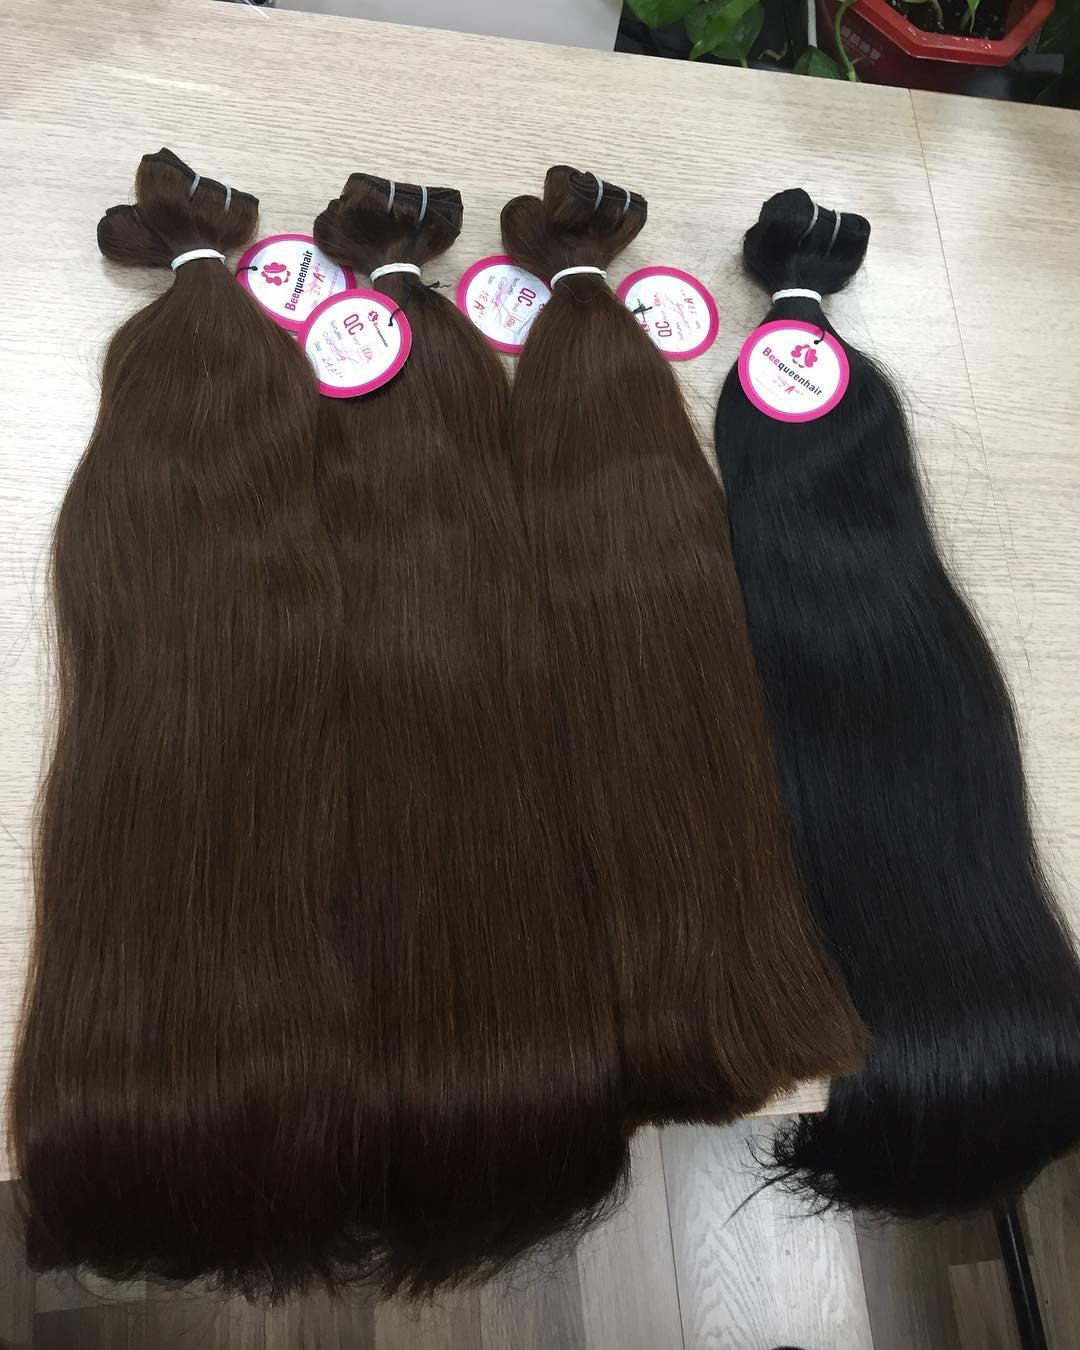 Remarkable Quality Of Virgin Hair Weave Extensions